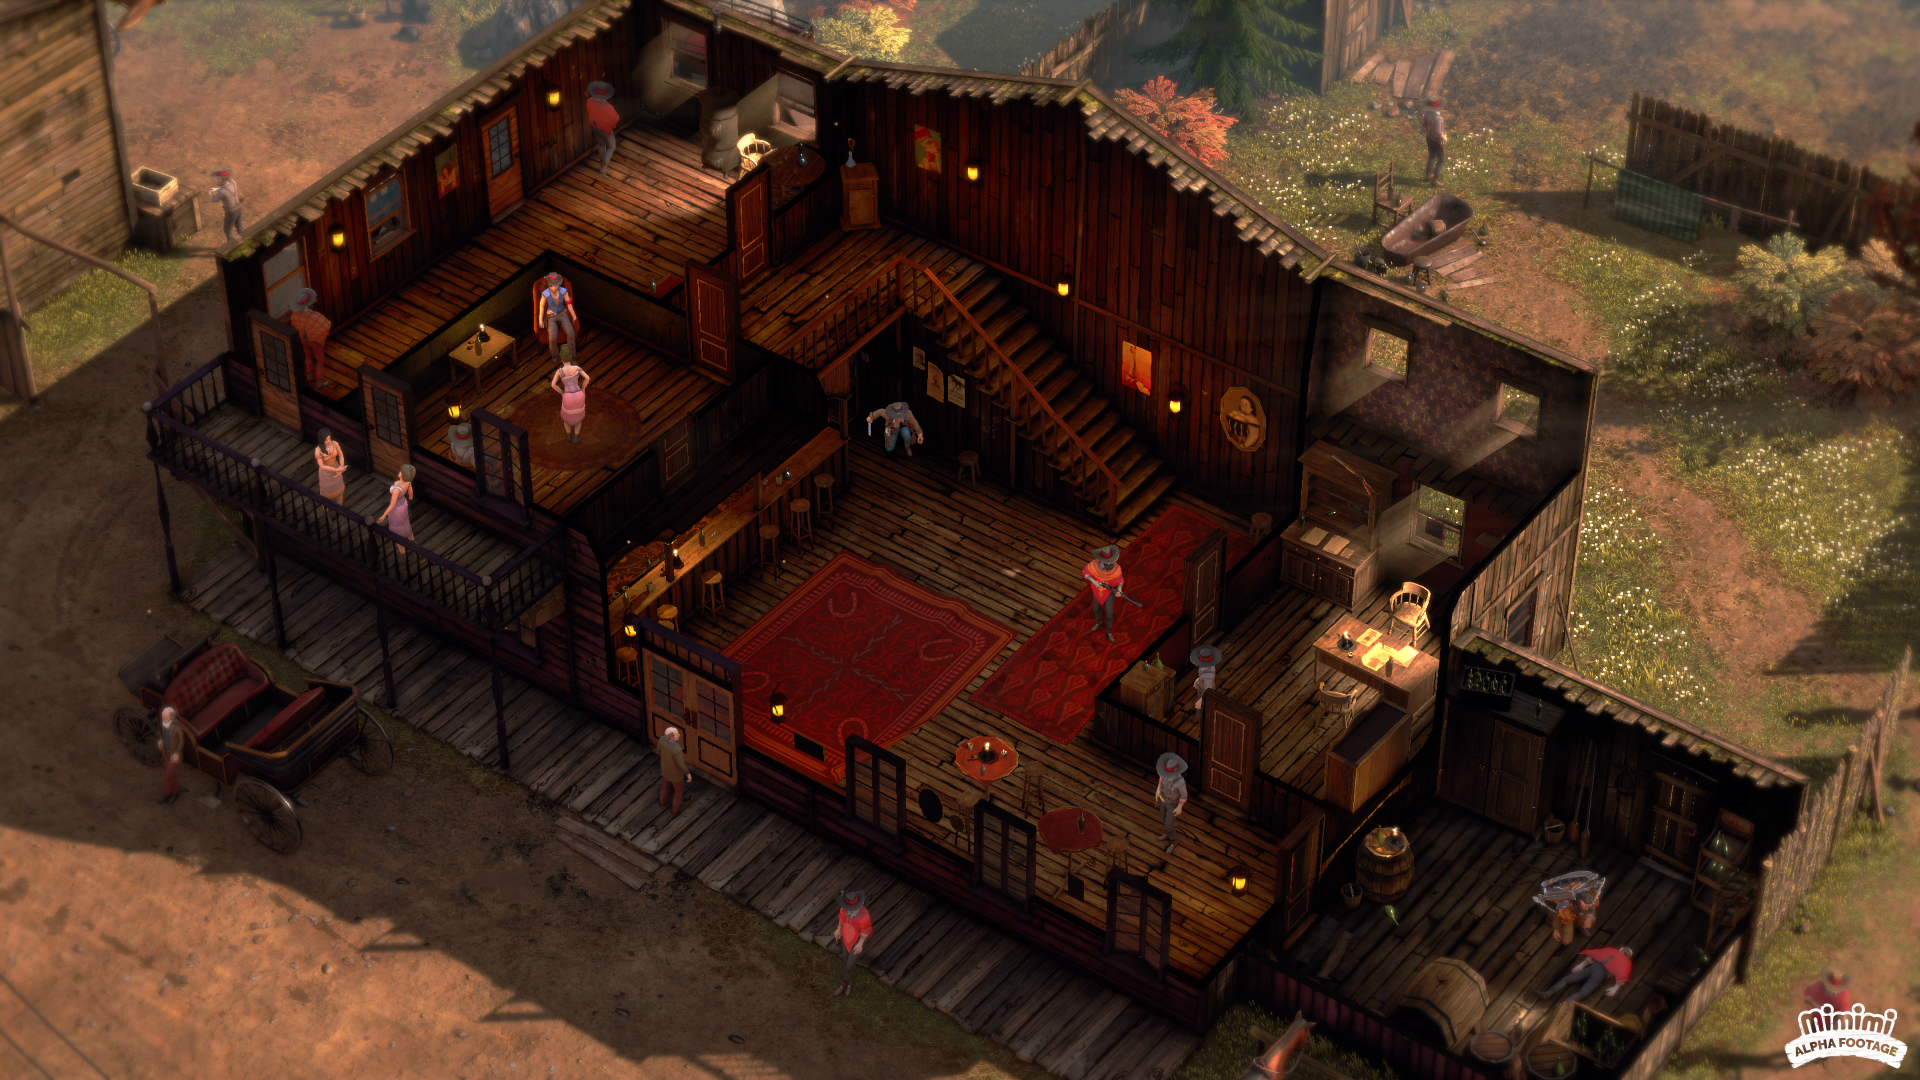 Desperados 3 Announced By Thq Nordic Releasing In 2019 For Ps4 Xbox One And Pc